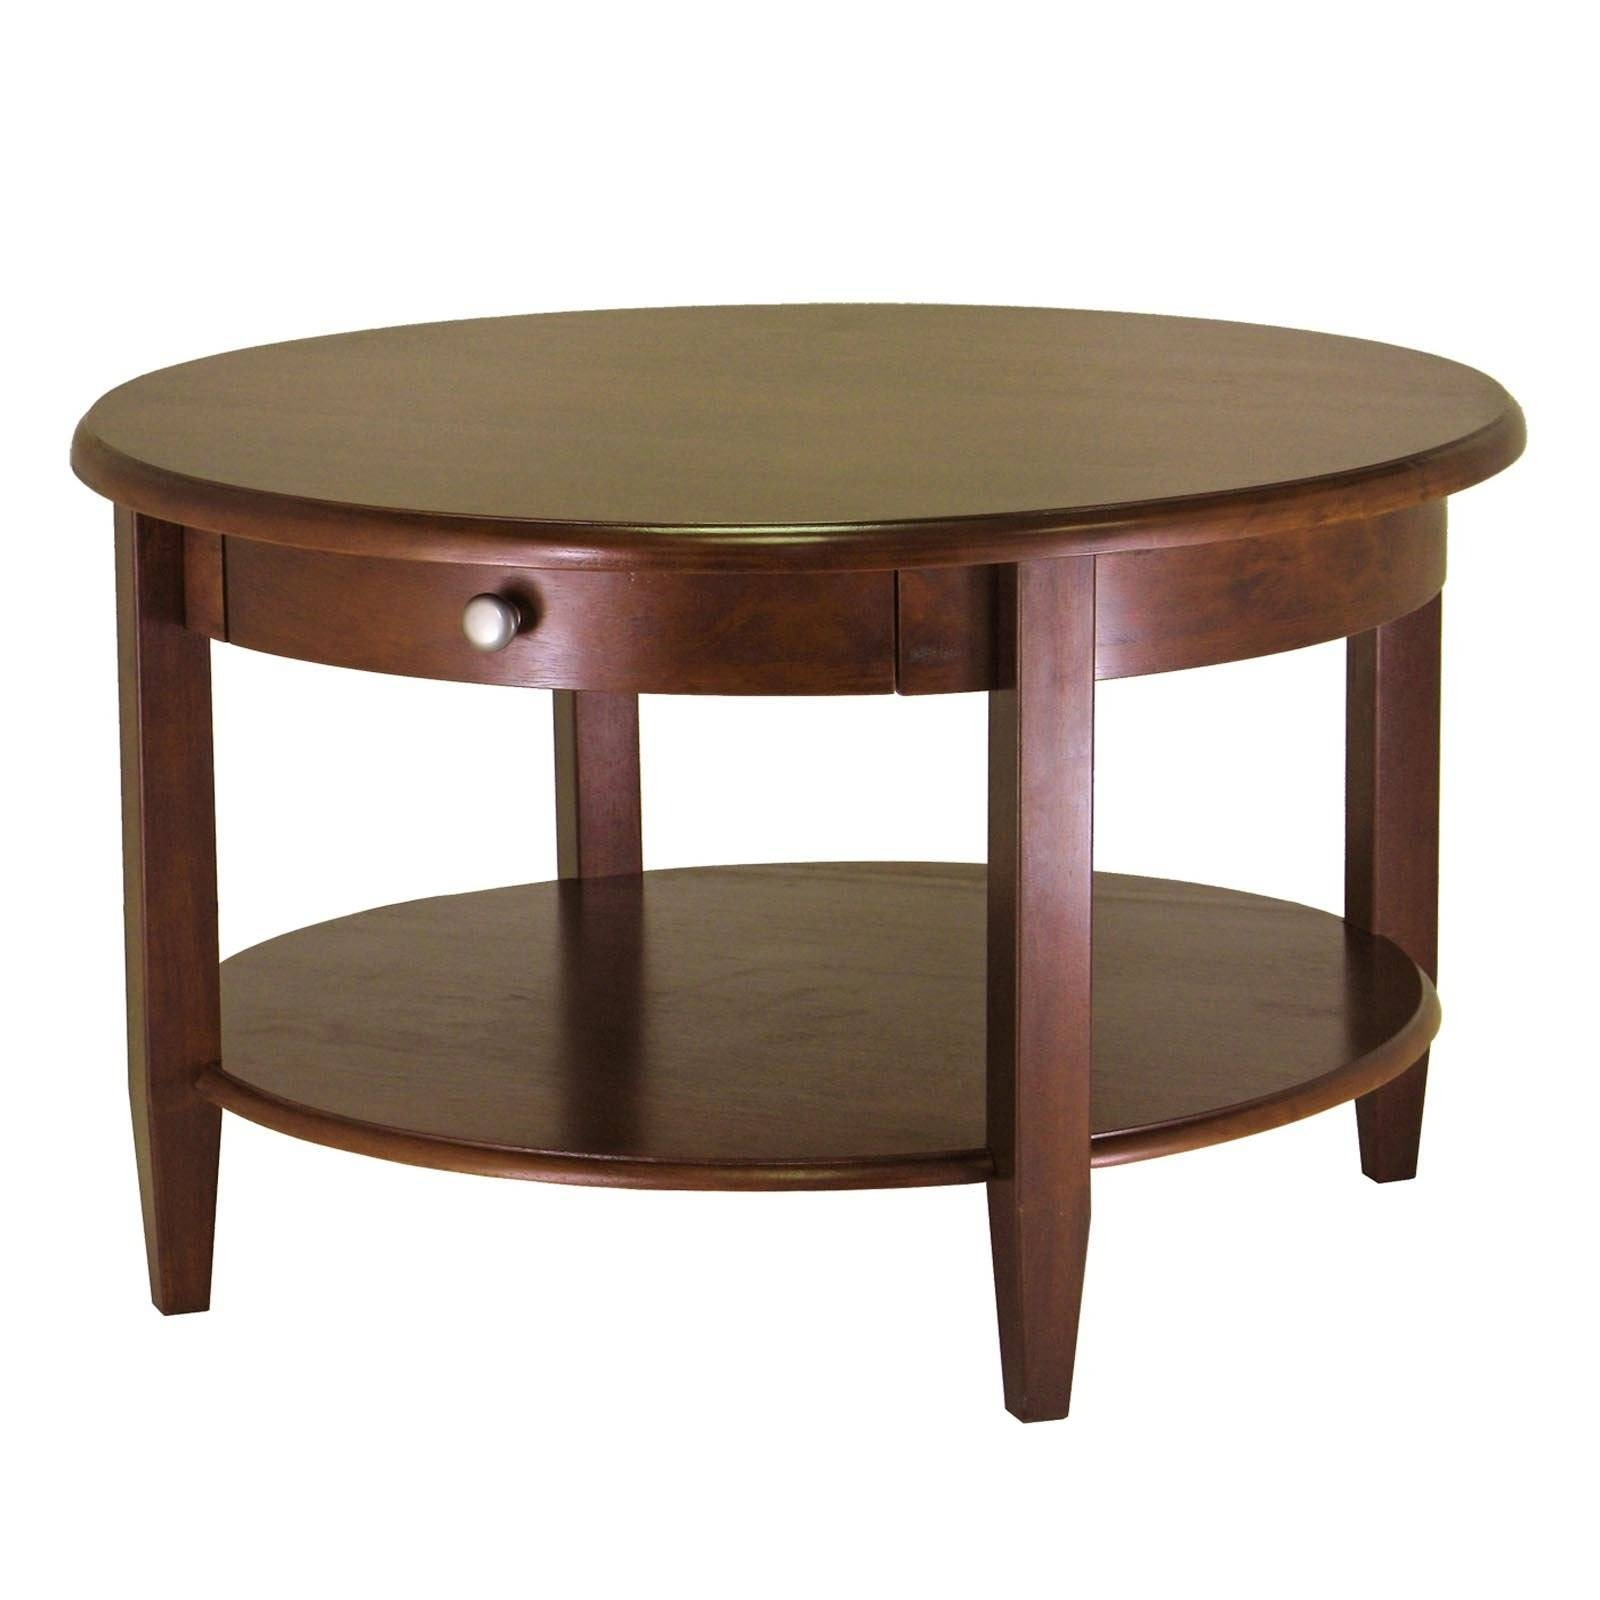 Coffee Table: Simple Small Round Coffee Table Design Ideas Round In Small Round Coffee Tables (View 8 of 30)